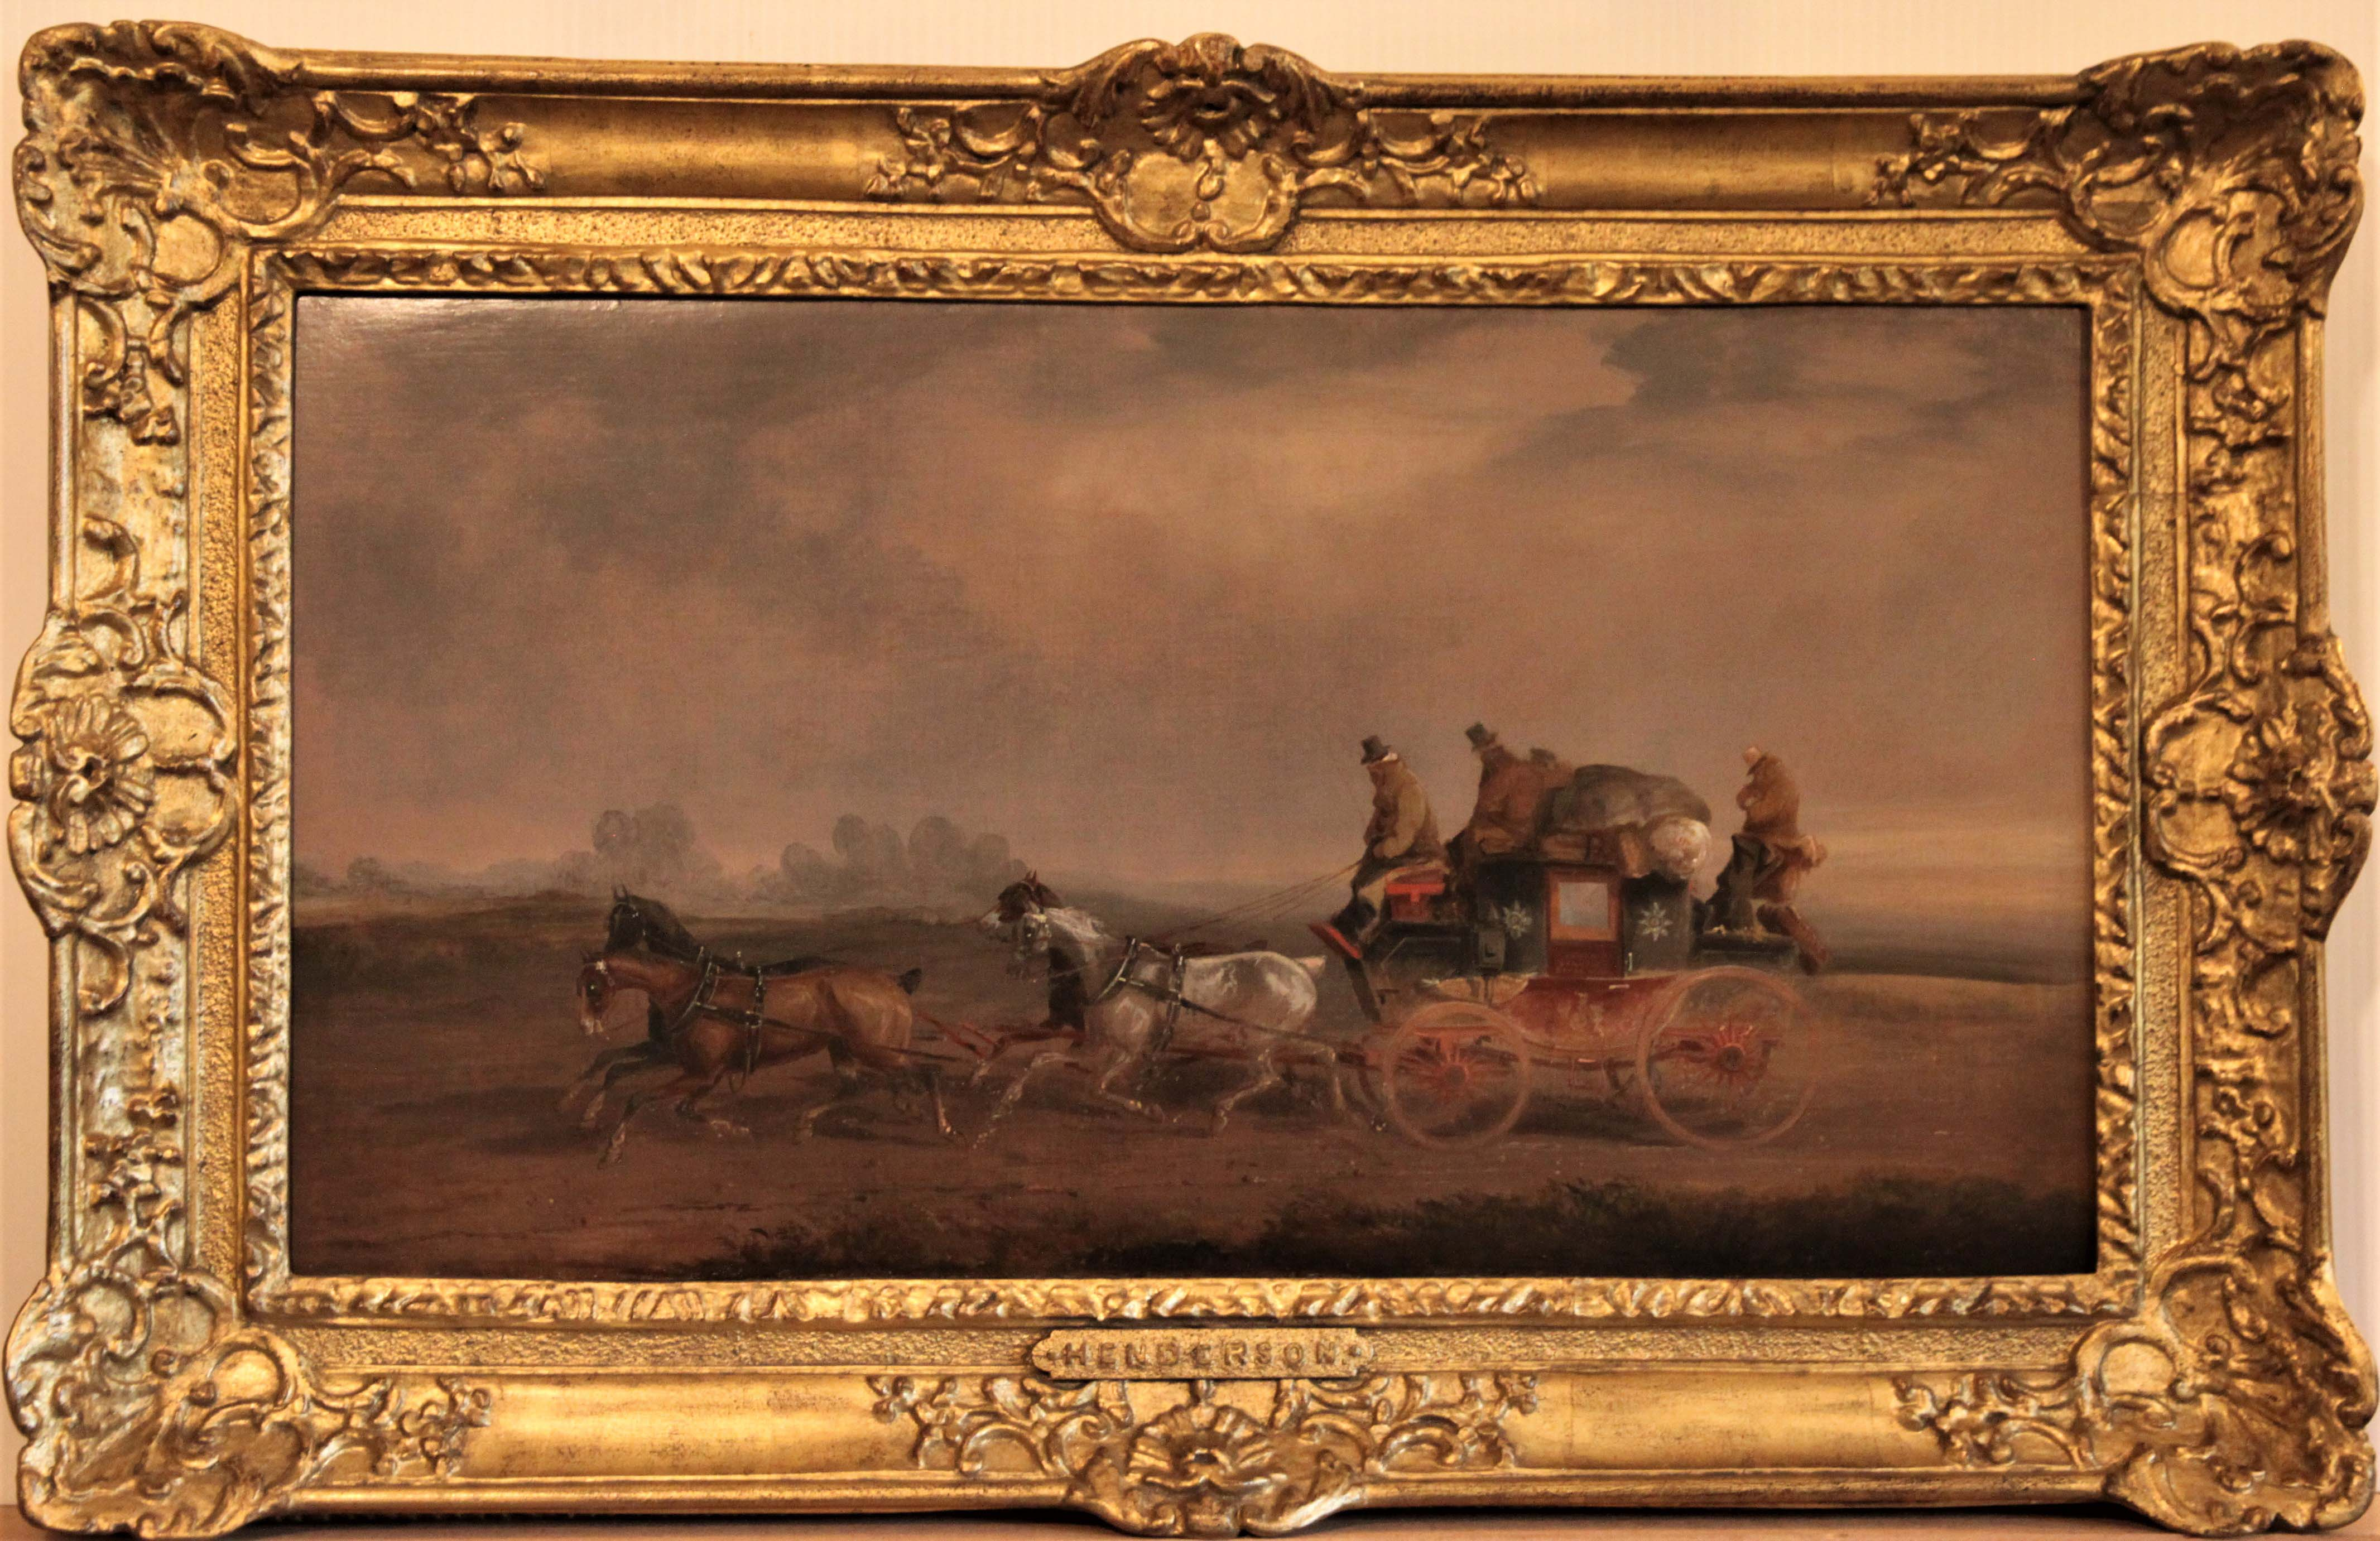 Click for larger image: Mid 19th century English Louth-London Royal Mail coaching oil by Charles Cooper Henderson (English, 1803-1877) - Mid 19th century English Louth-London Royal Mail coaching oil by Charles Cooper Henderson (English, 1803-1877)